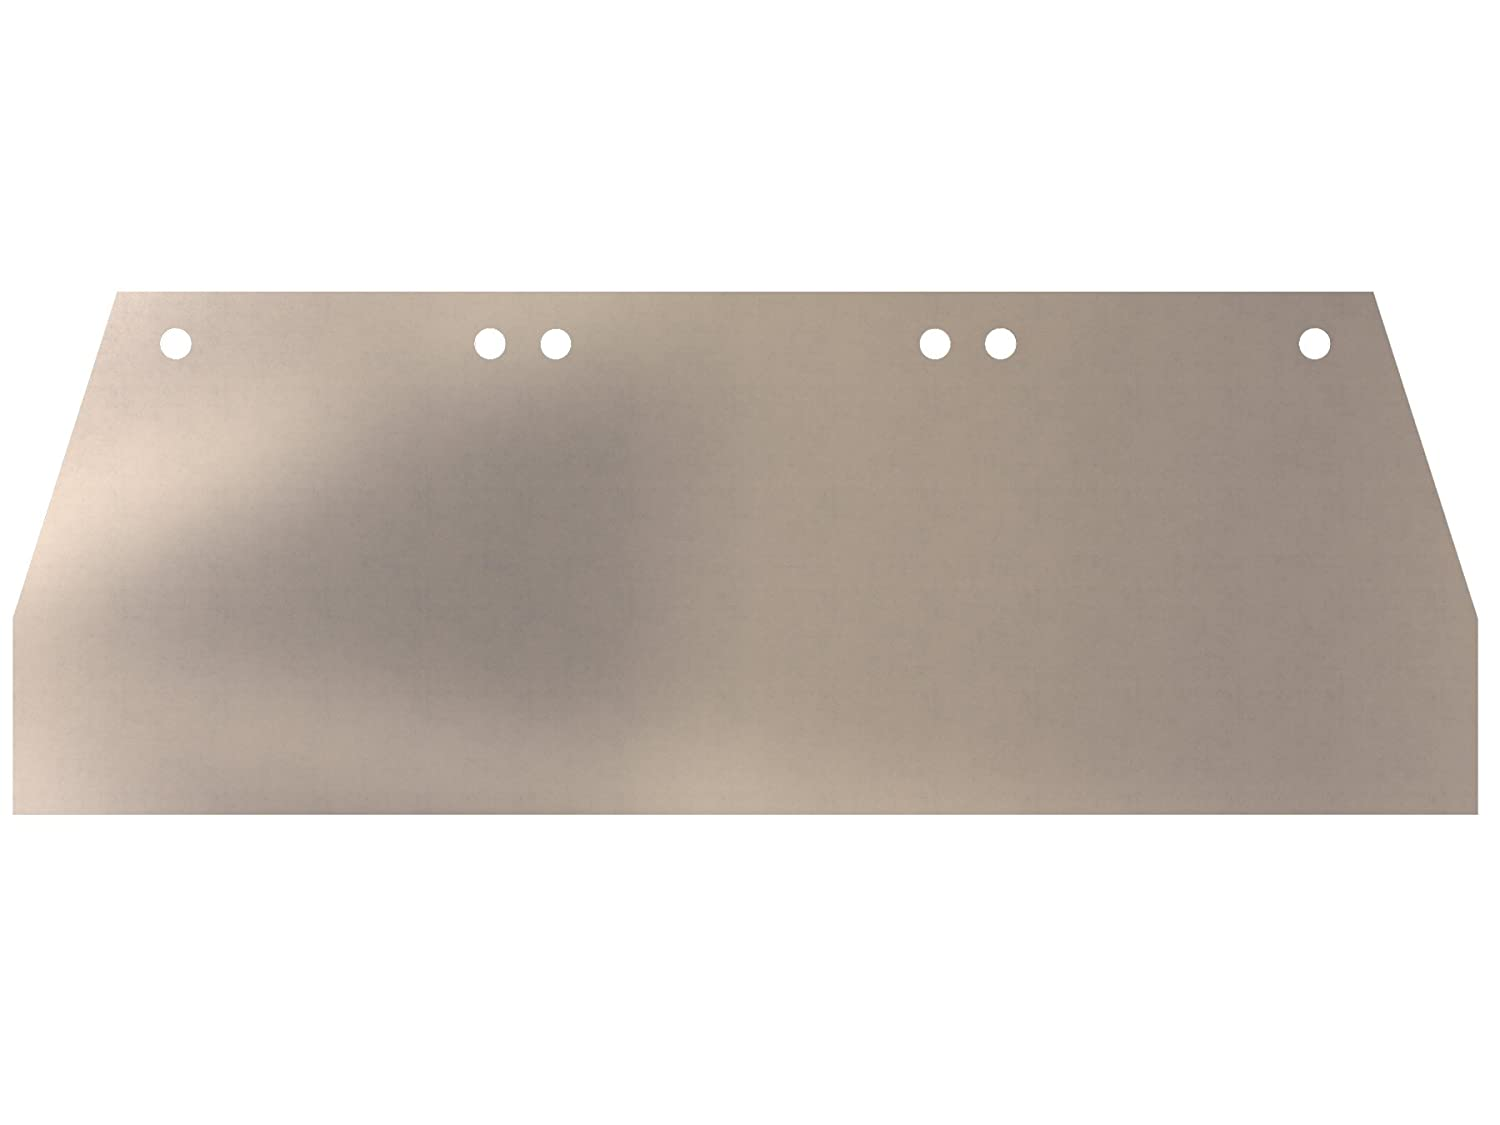 Bon 15-387 14' Replacement Scraper Blade Square Steel for 85-223 Model Bon Tool